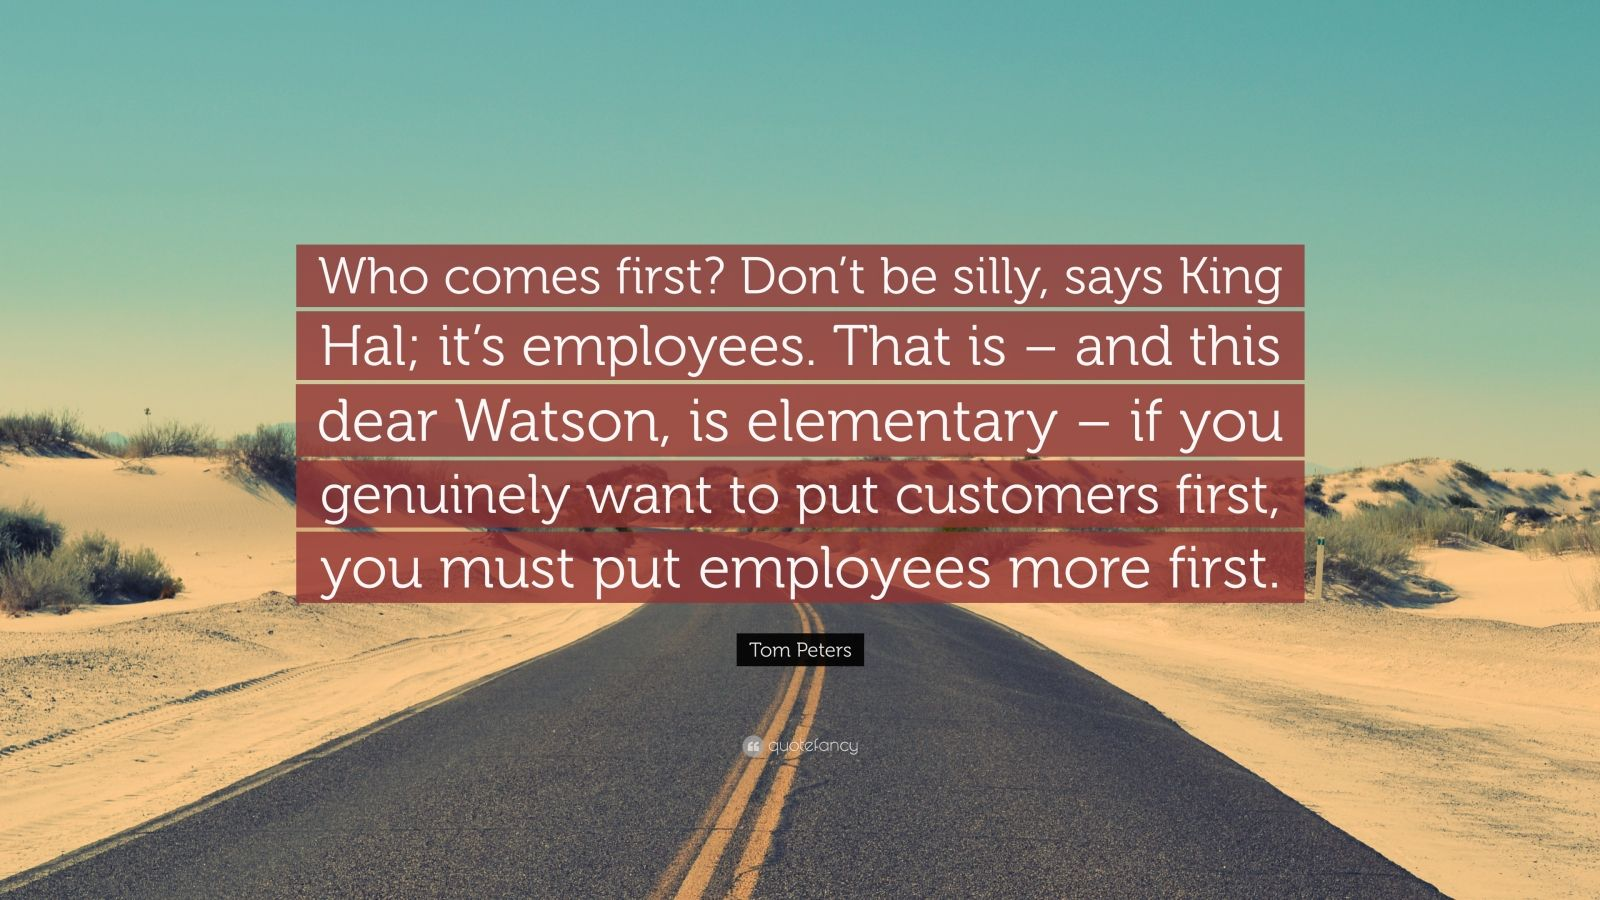 """Tom Peters Quote: """"Who comes first? Don't be silly, says King Hal; it's employees. That is – and this dear Watson, is elementary – if you genuinely want to put customers first, you must put employees more first."""""""